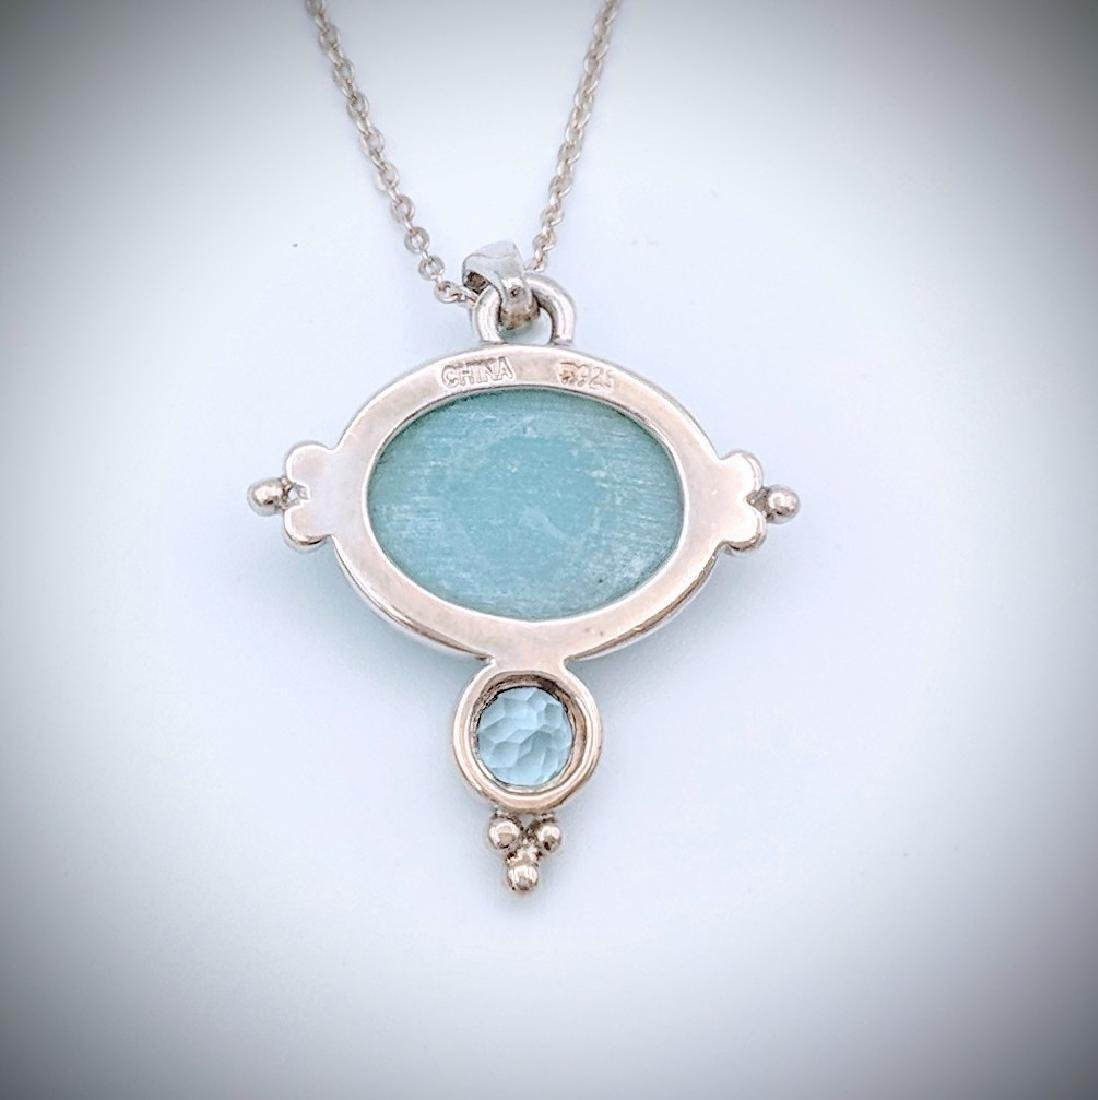 Sterling Silver Necklace w Turquoise and Blue Topaz - 2